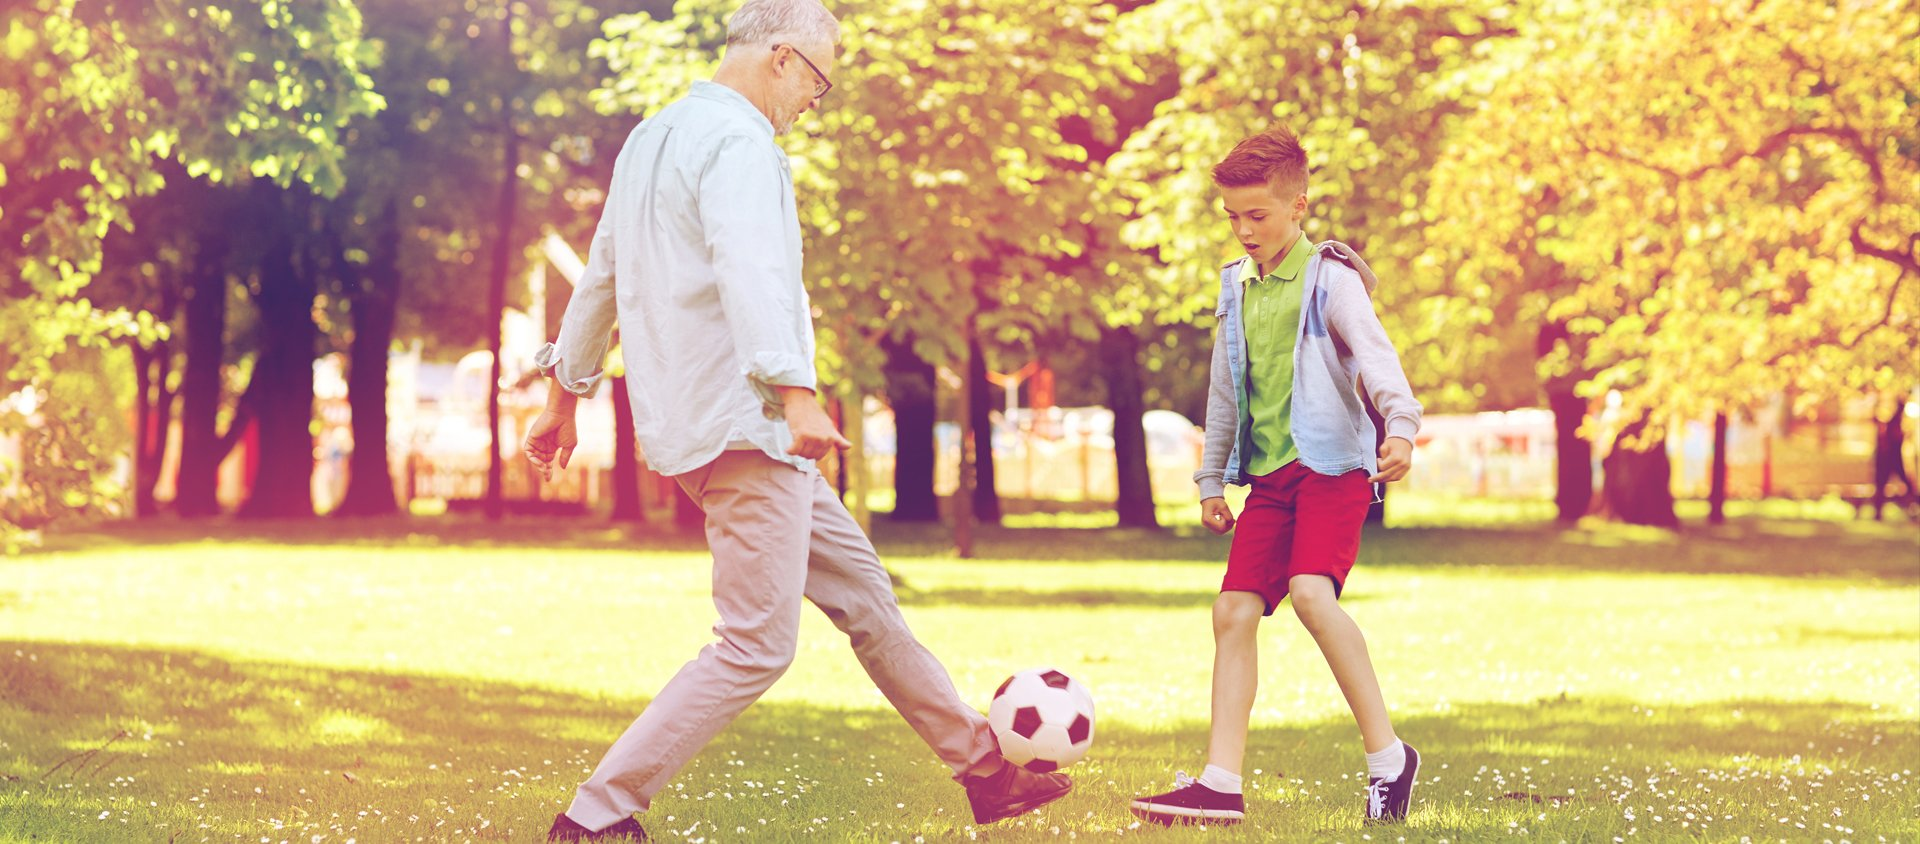 grandfather playing soccer with grandson